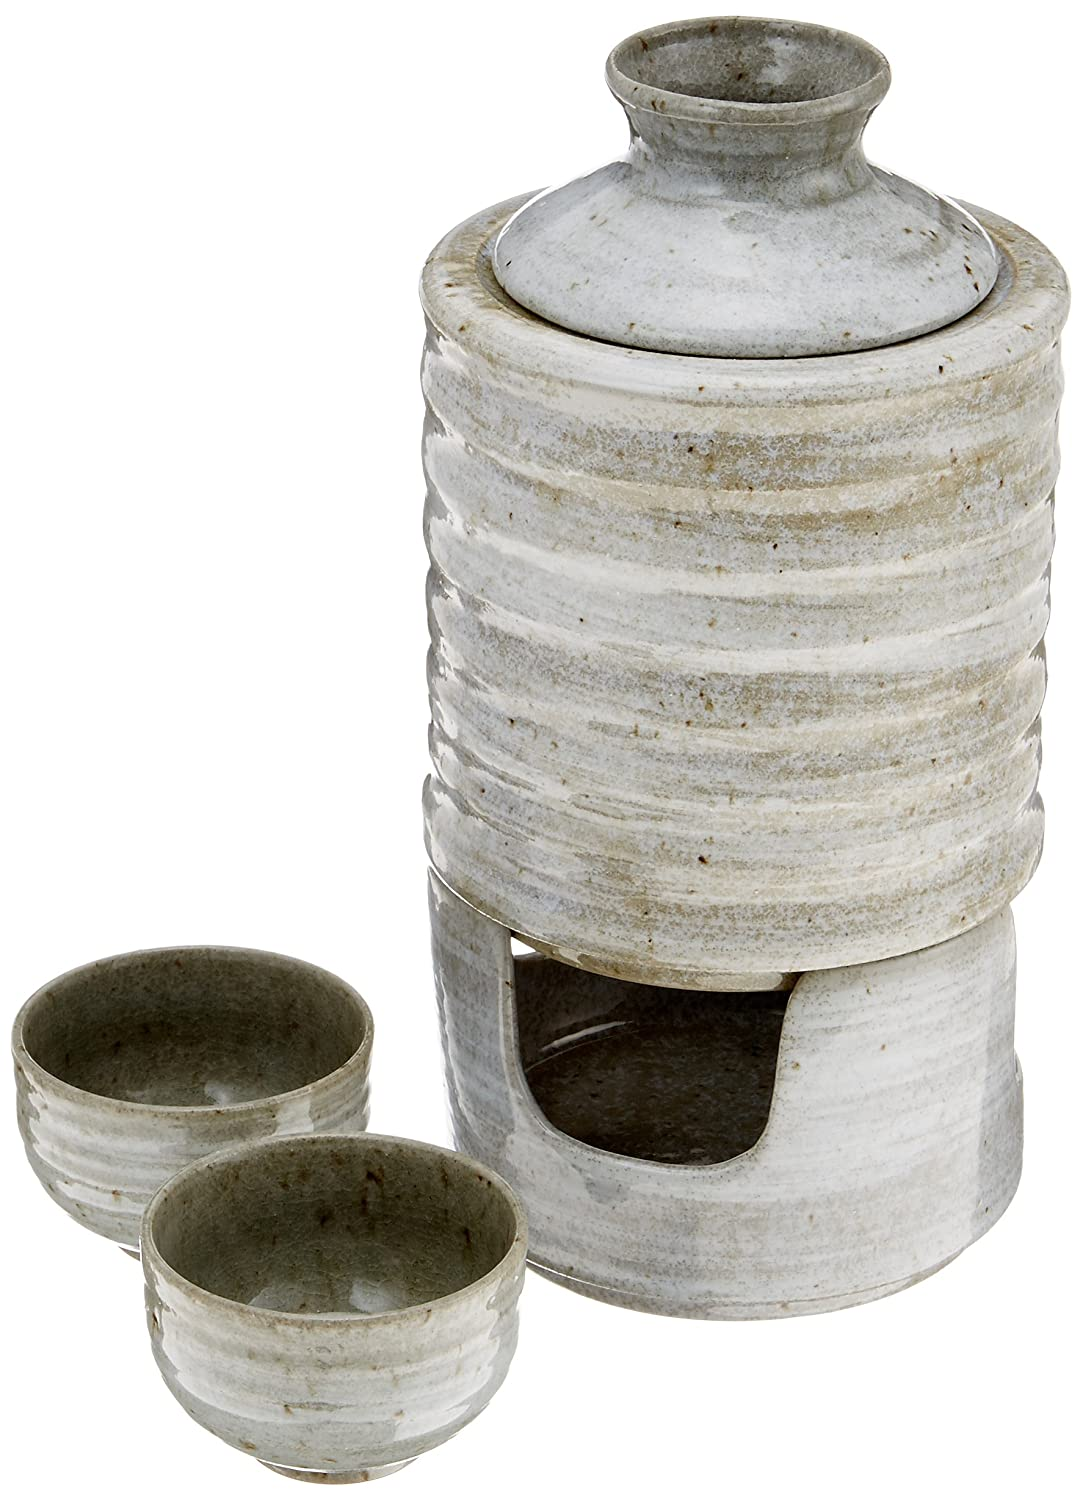 Also can cold vessel set celadon brush bottle and hot sake cold sake pottery Mino gift present (japan import) Yale net